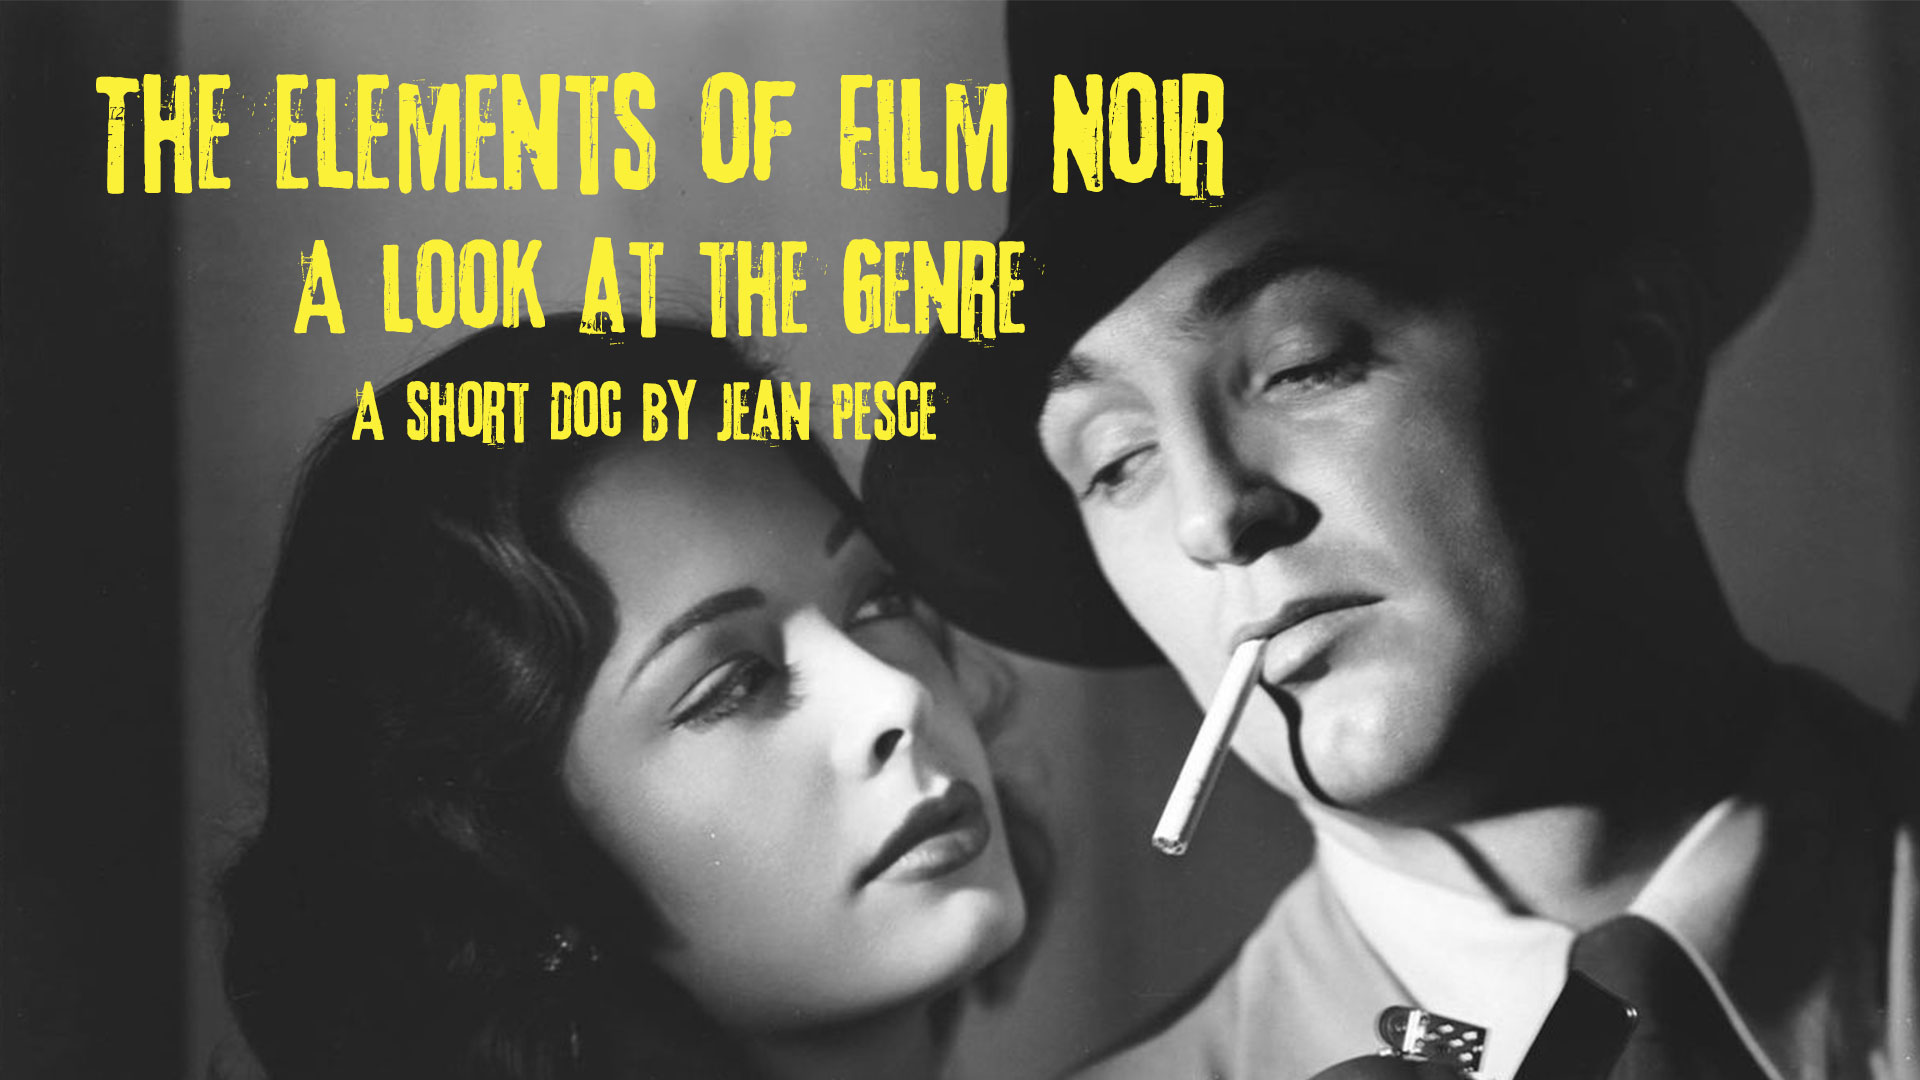 The Elements of Film Noir: A Look at the Genre